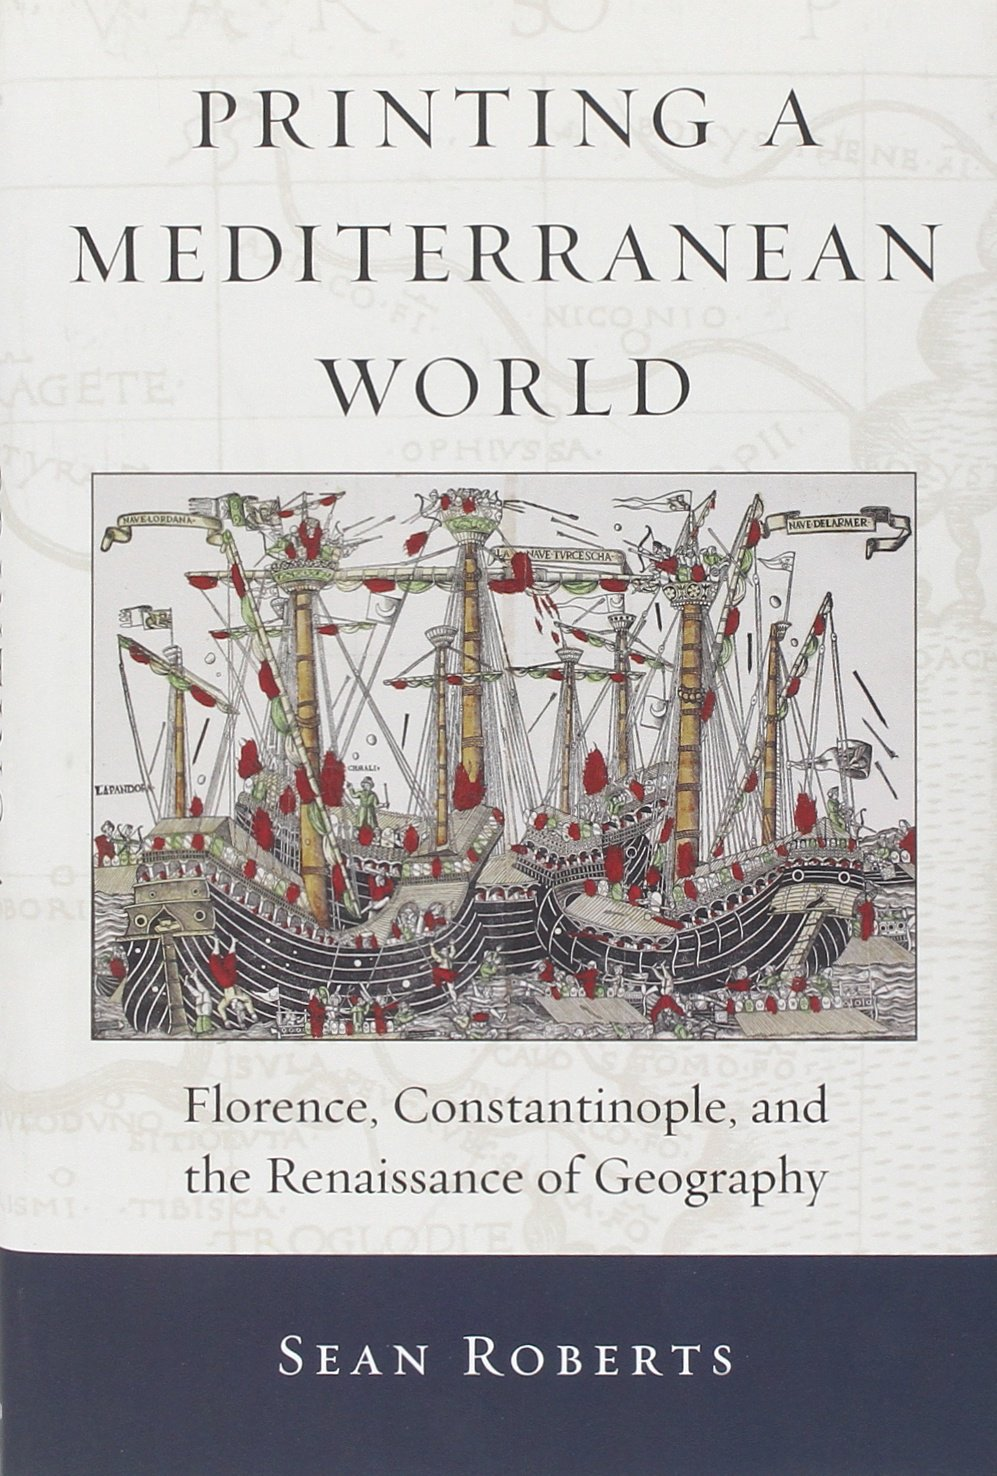 Download Printing a Mediterranean World: Florence, Constantinople, and the Renaissance of Geography (I Tatti Studies in Italian Renaissance History) ebook